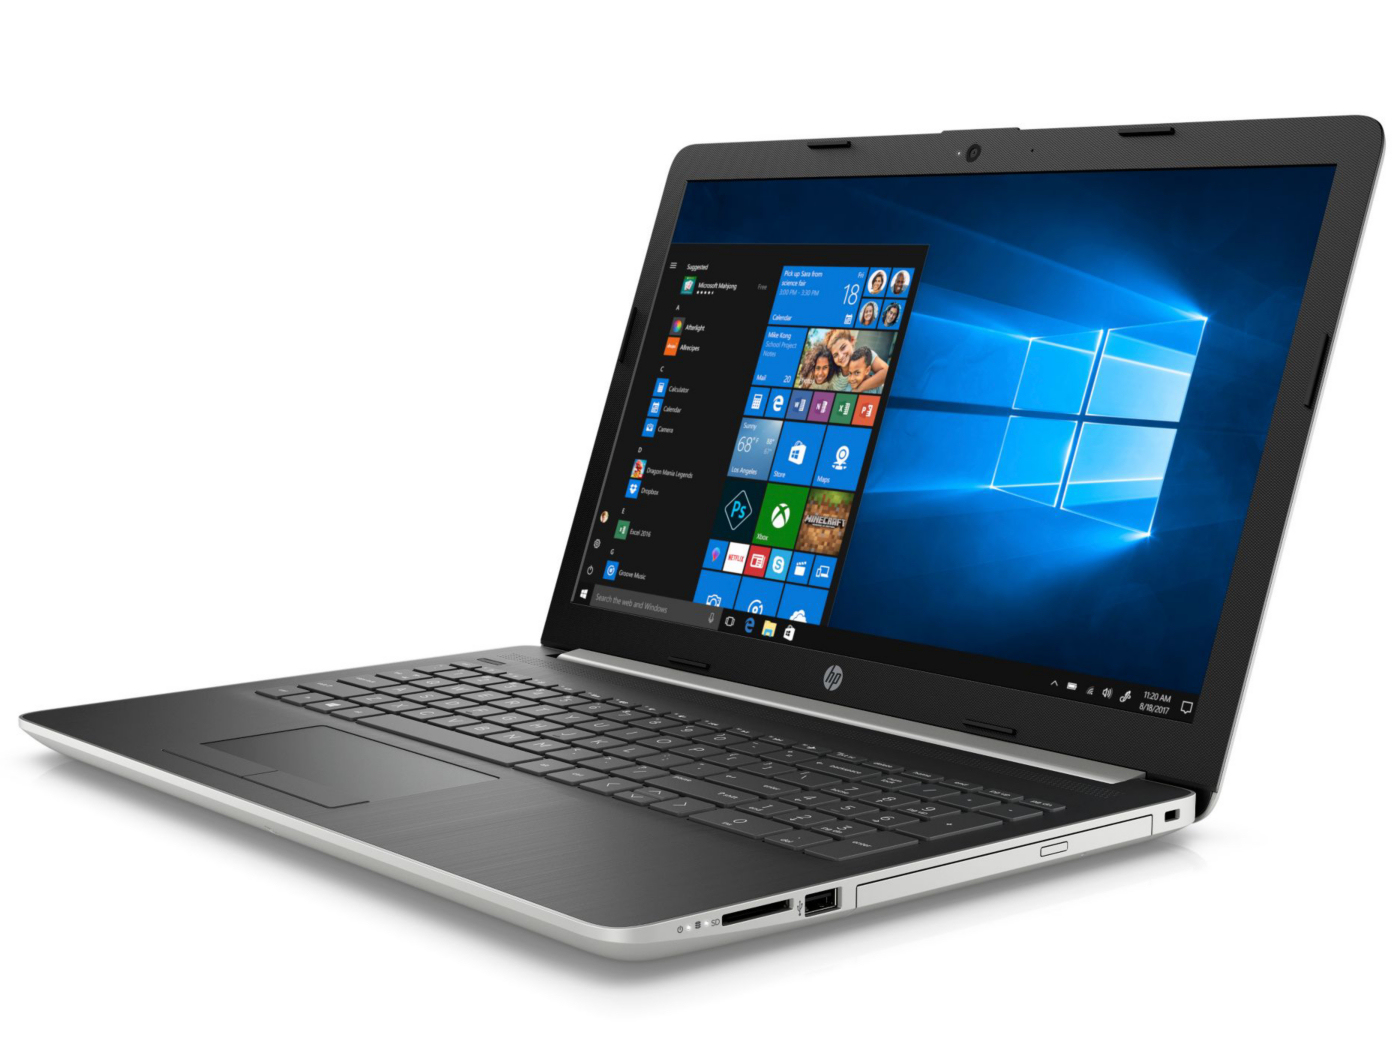 HP 15 (i5-8250U, GeForce MX110, SSD, FHD) Laptop Review - NotebookCheck.net Reviews